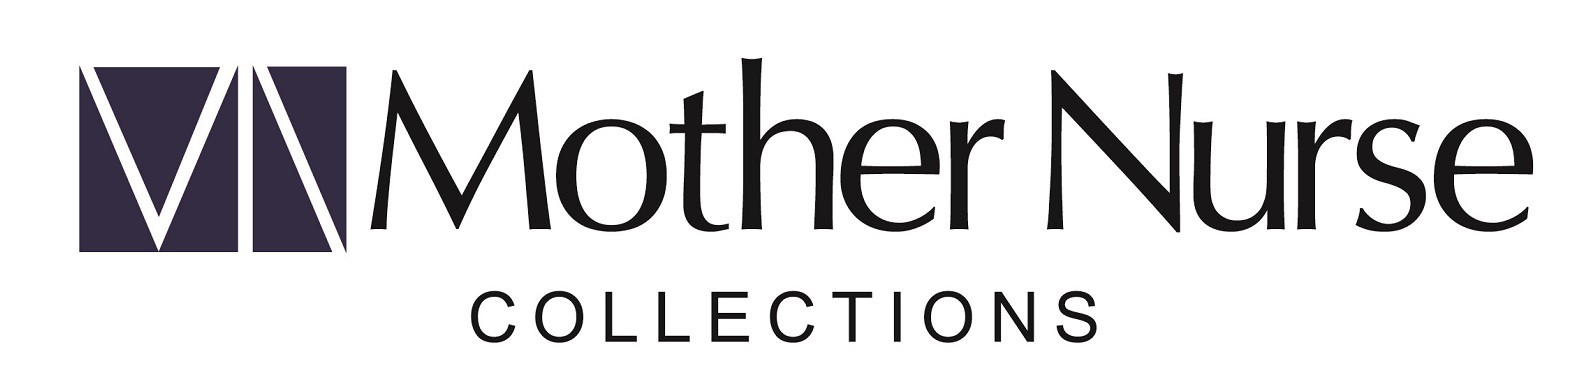 Mother Nurse Collections